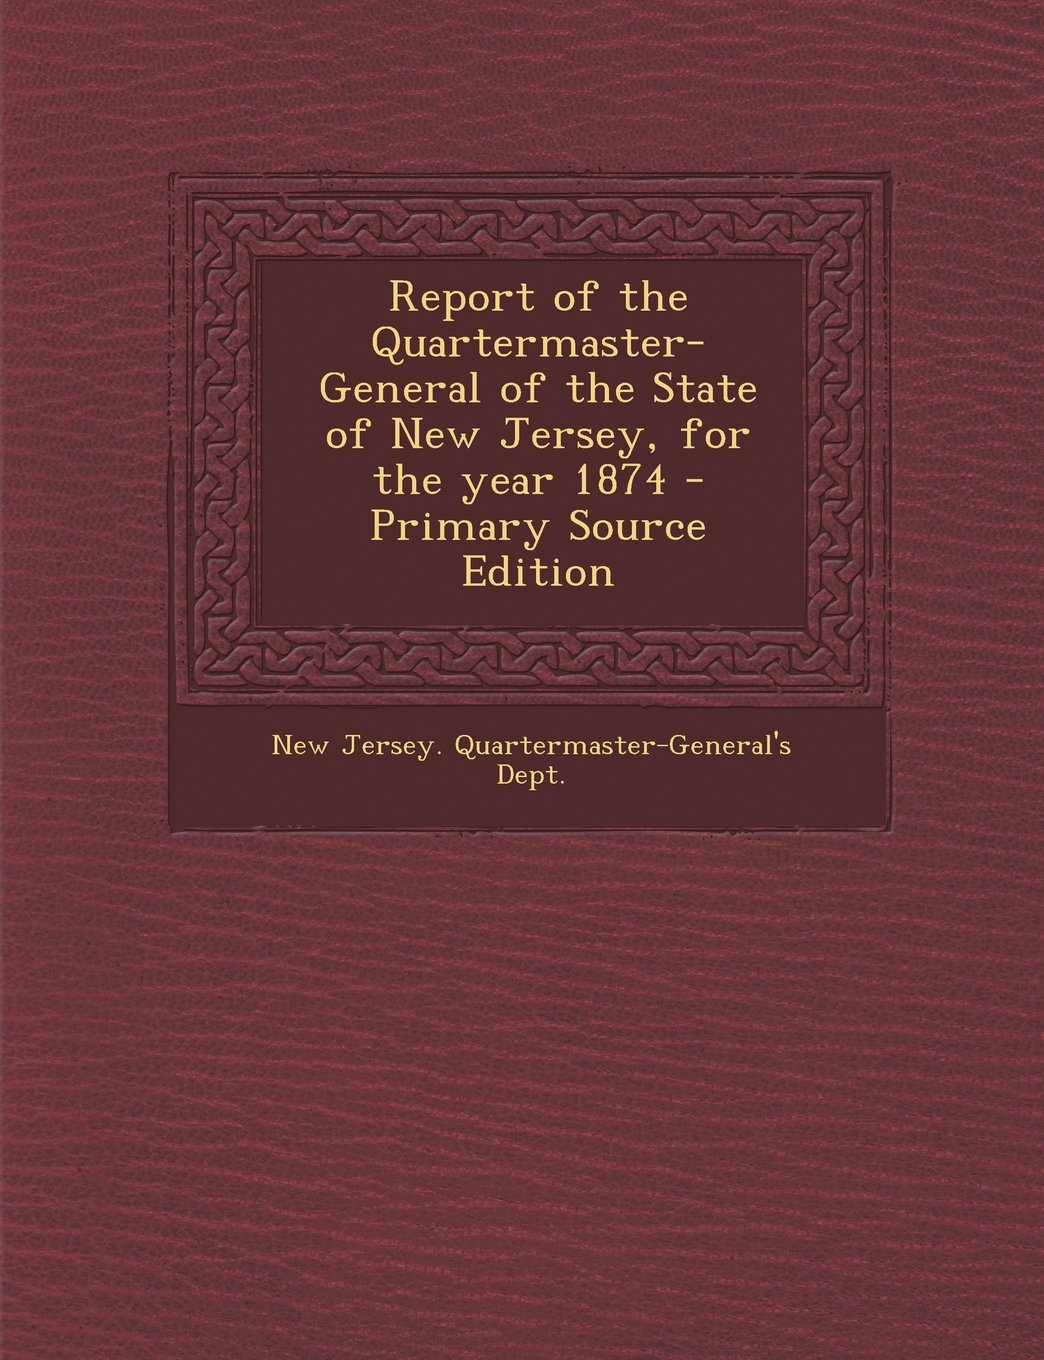 Report of the Quartermaster- General of the State of New Jersey, for the year 1874 ebook